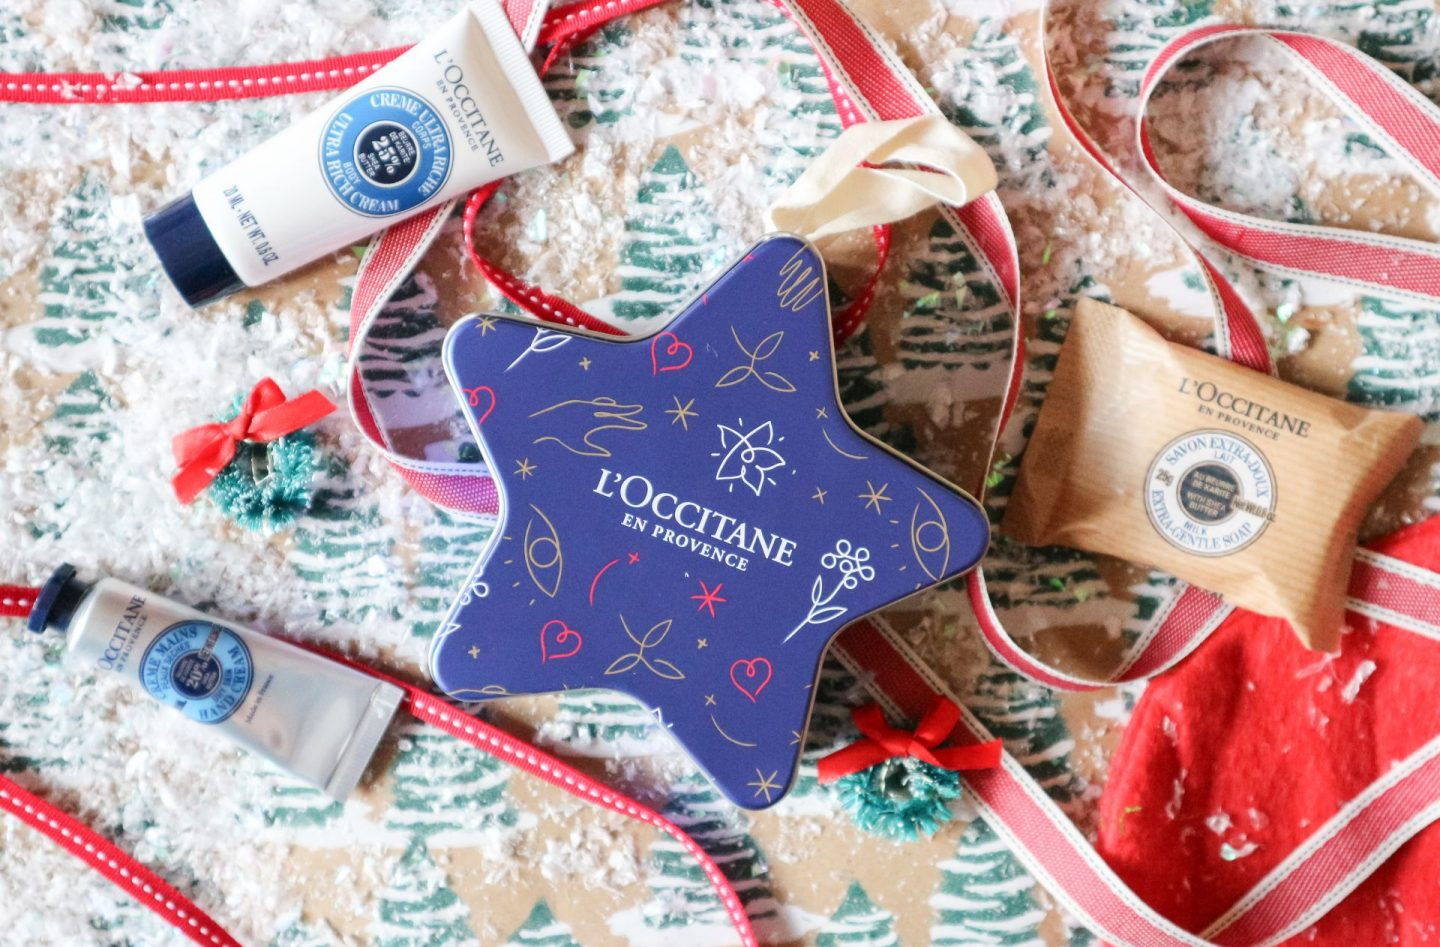 L'Occitane Shea Butter Festive Bauble review